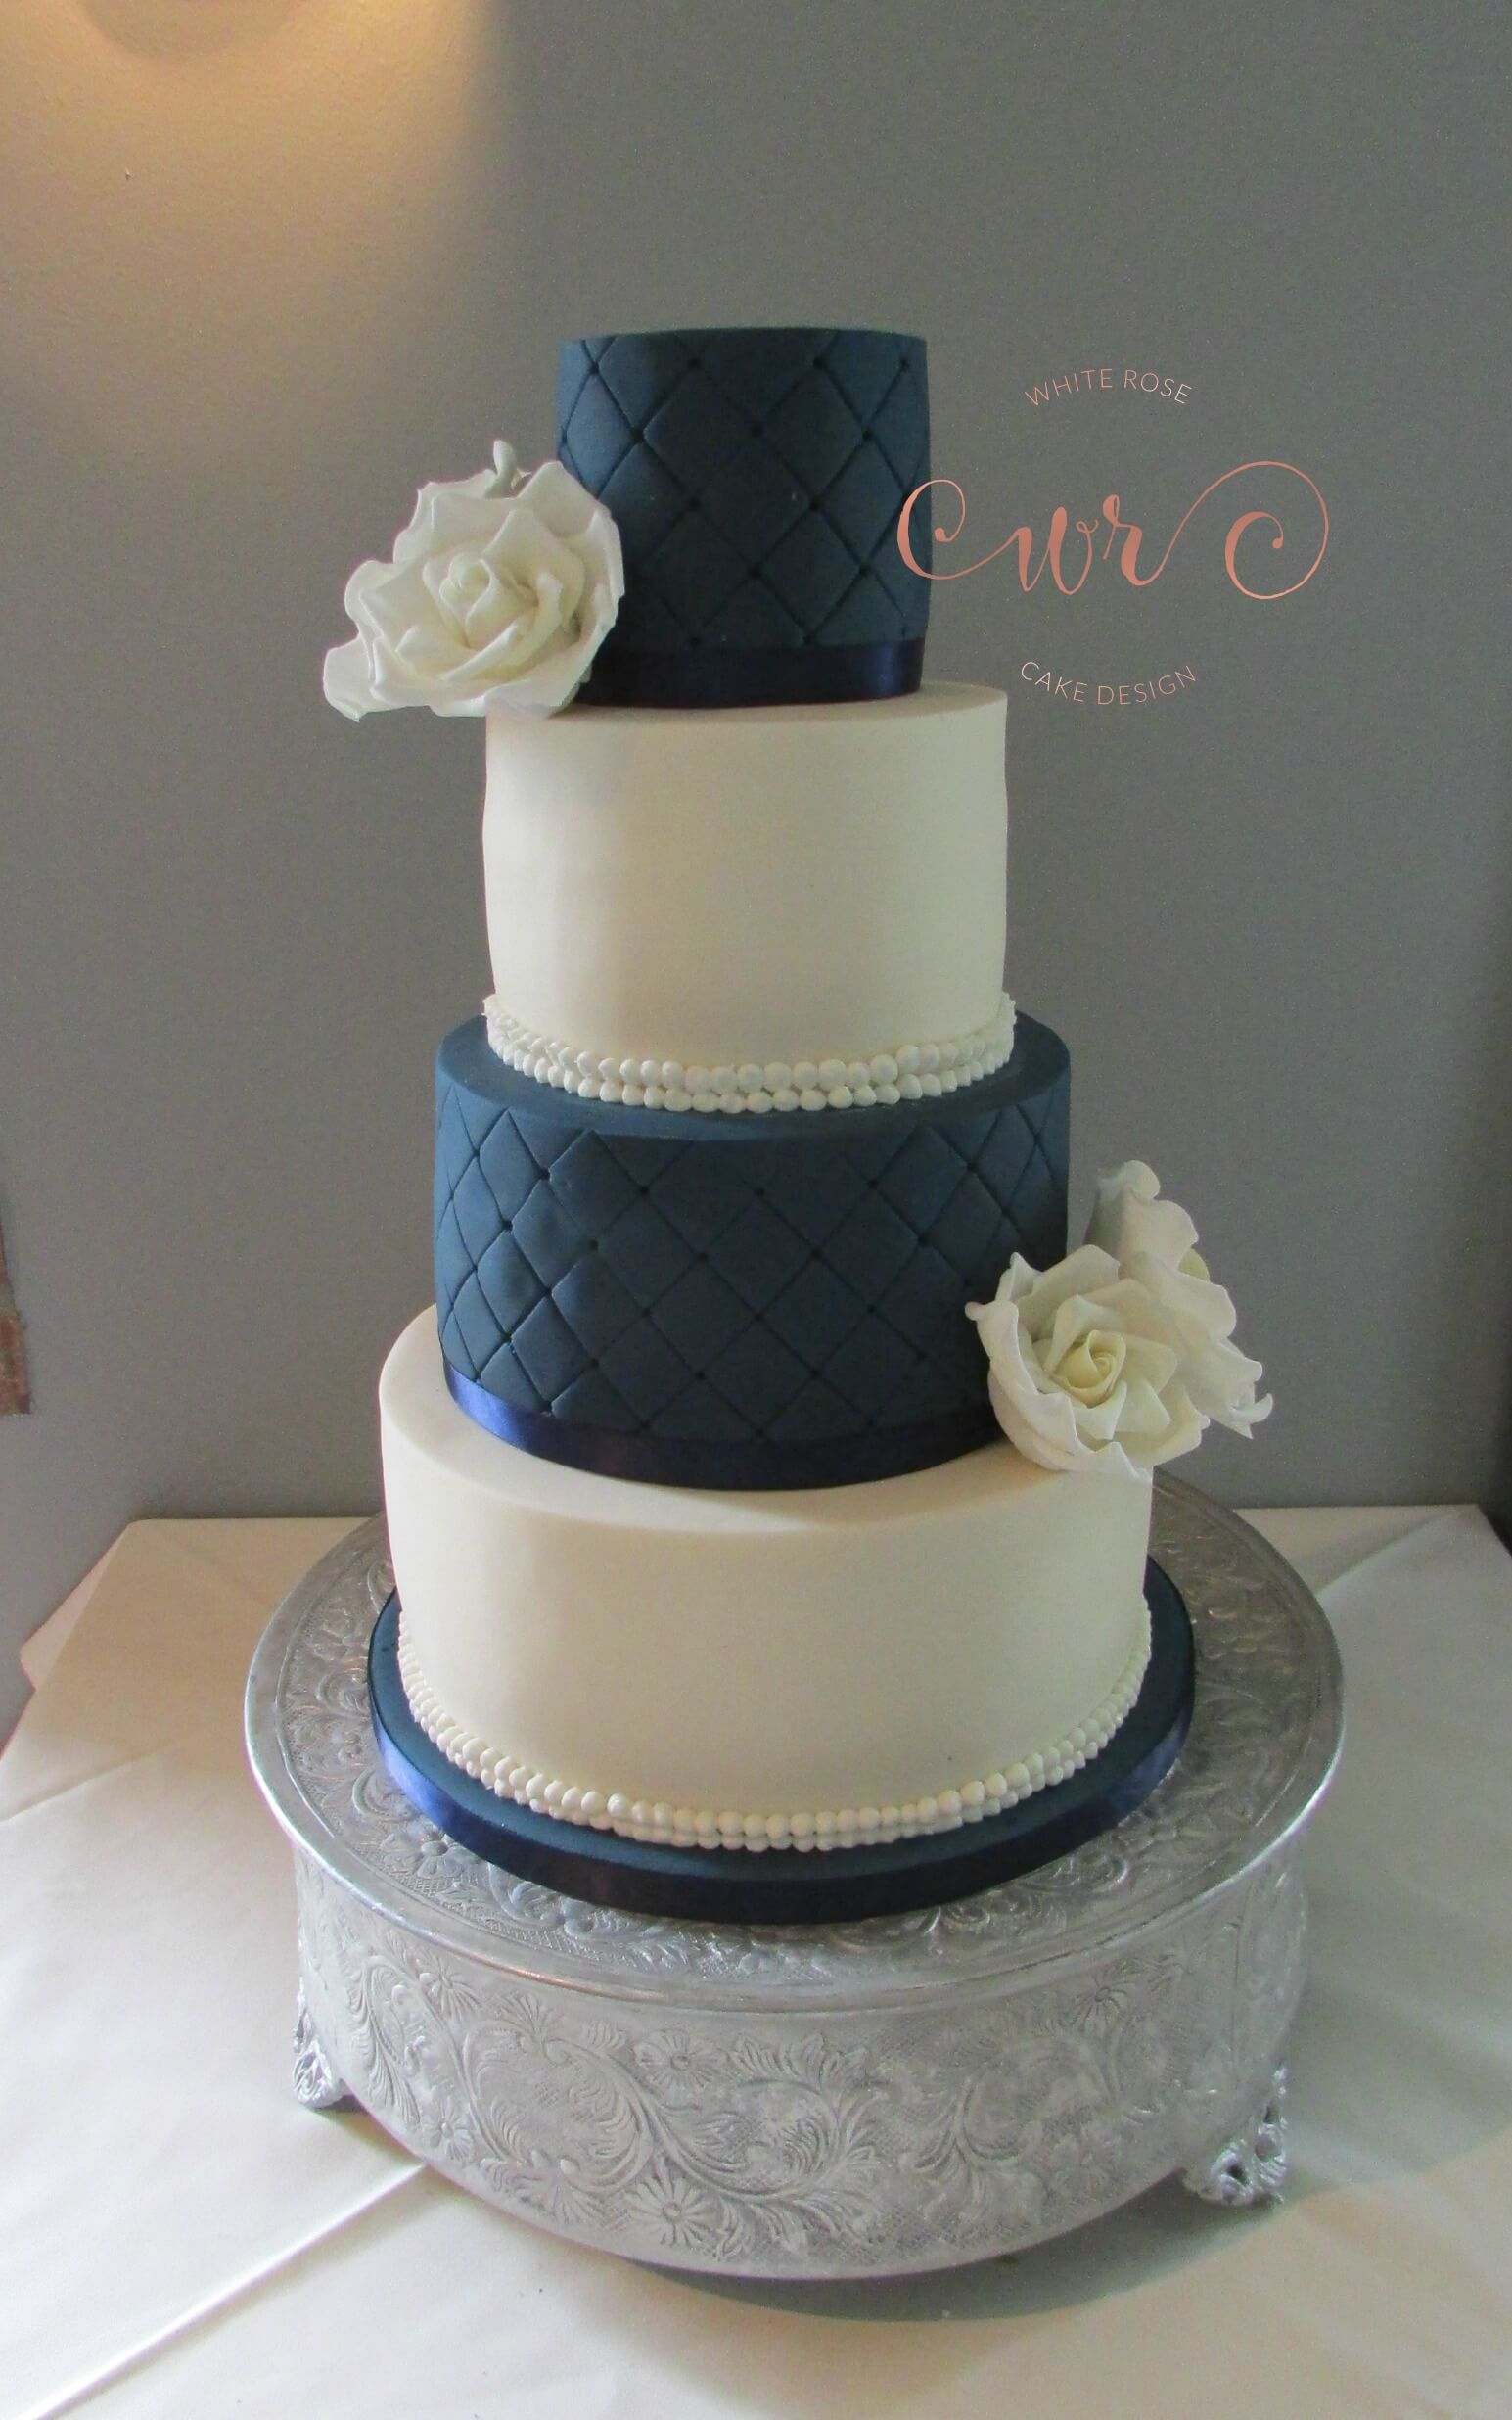 Ivory and Navy Wedding Cakeby White Rose Cake Design, Wedding Cakes in West Yorkshire